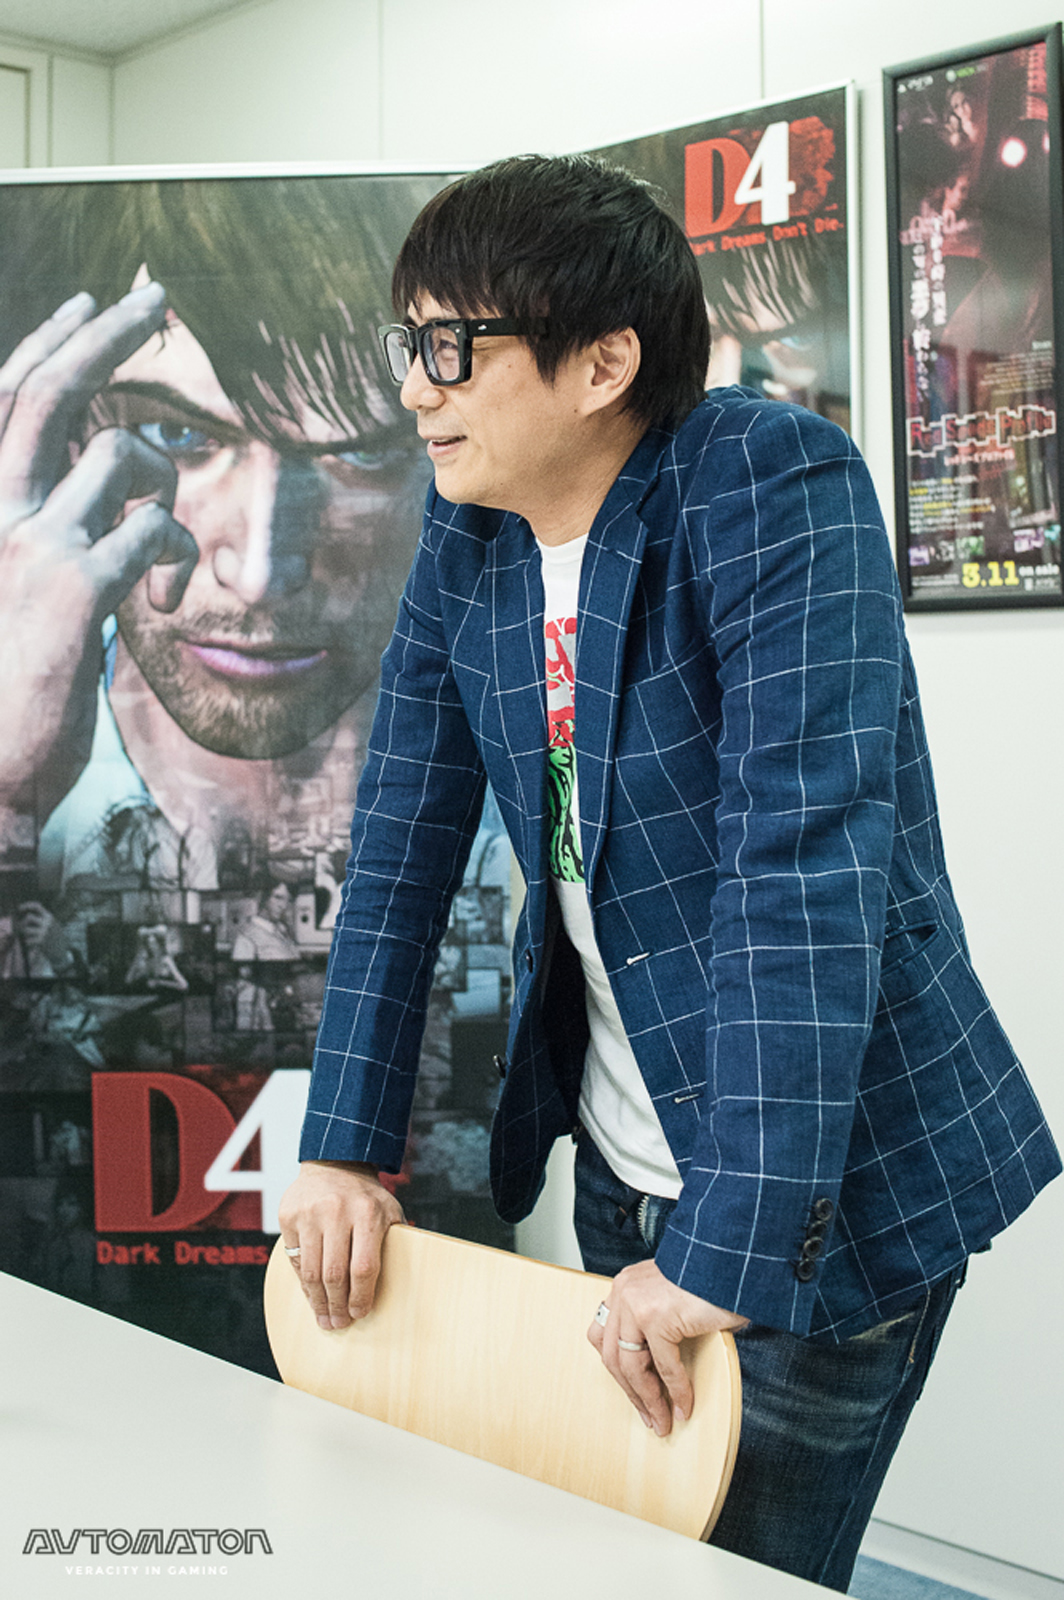 ask-swery-about-pc-d4-release-02-012